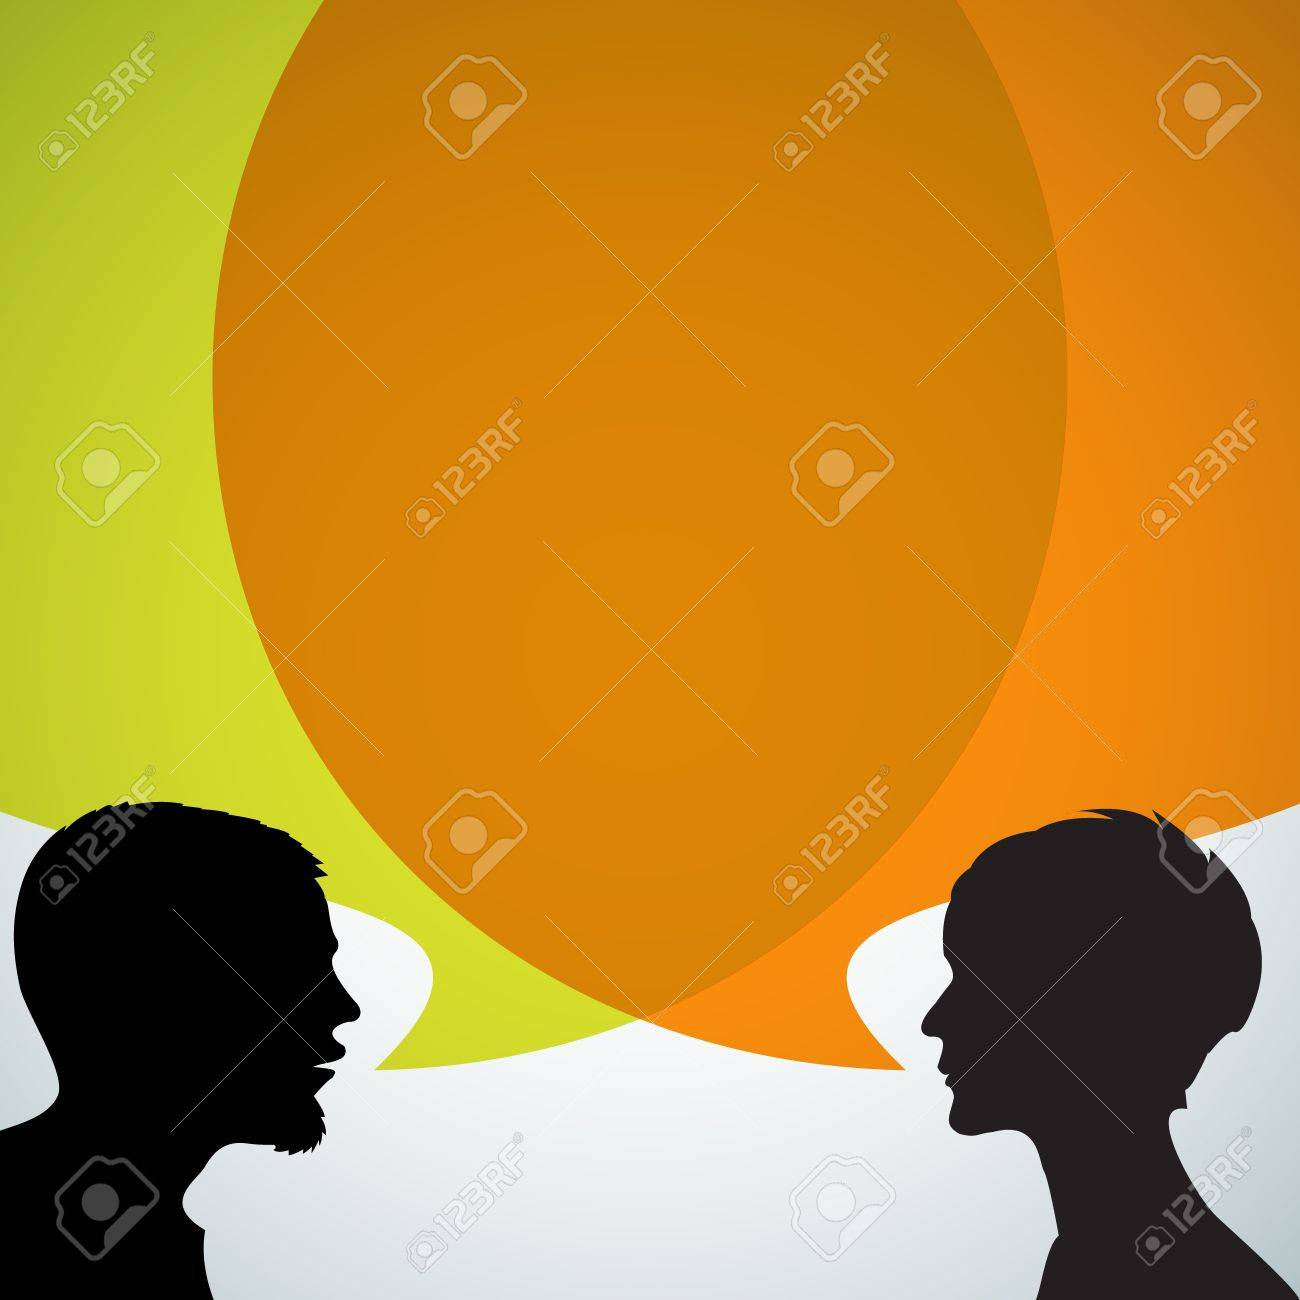 man interview stock illustrations cliparts and royalty man man interview abstract speakers silhouettes big orange bubble chat dialogue talk